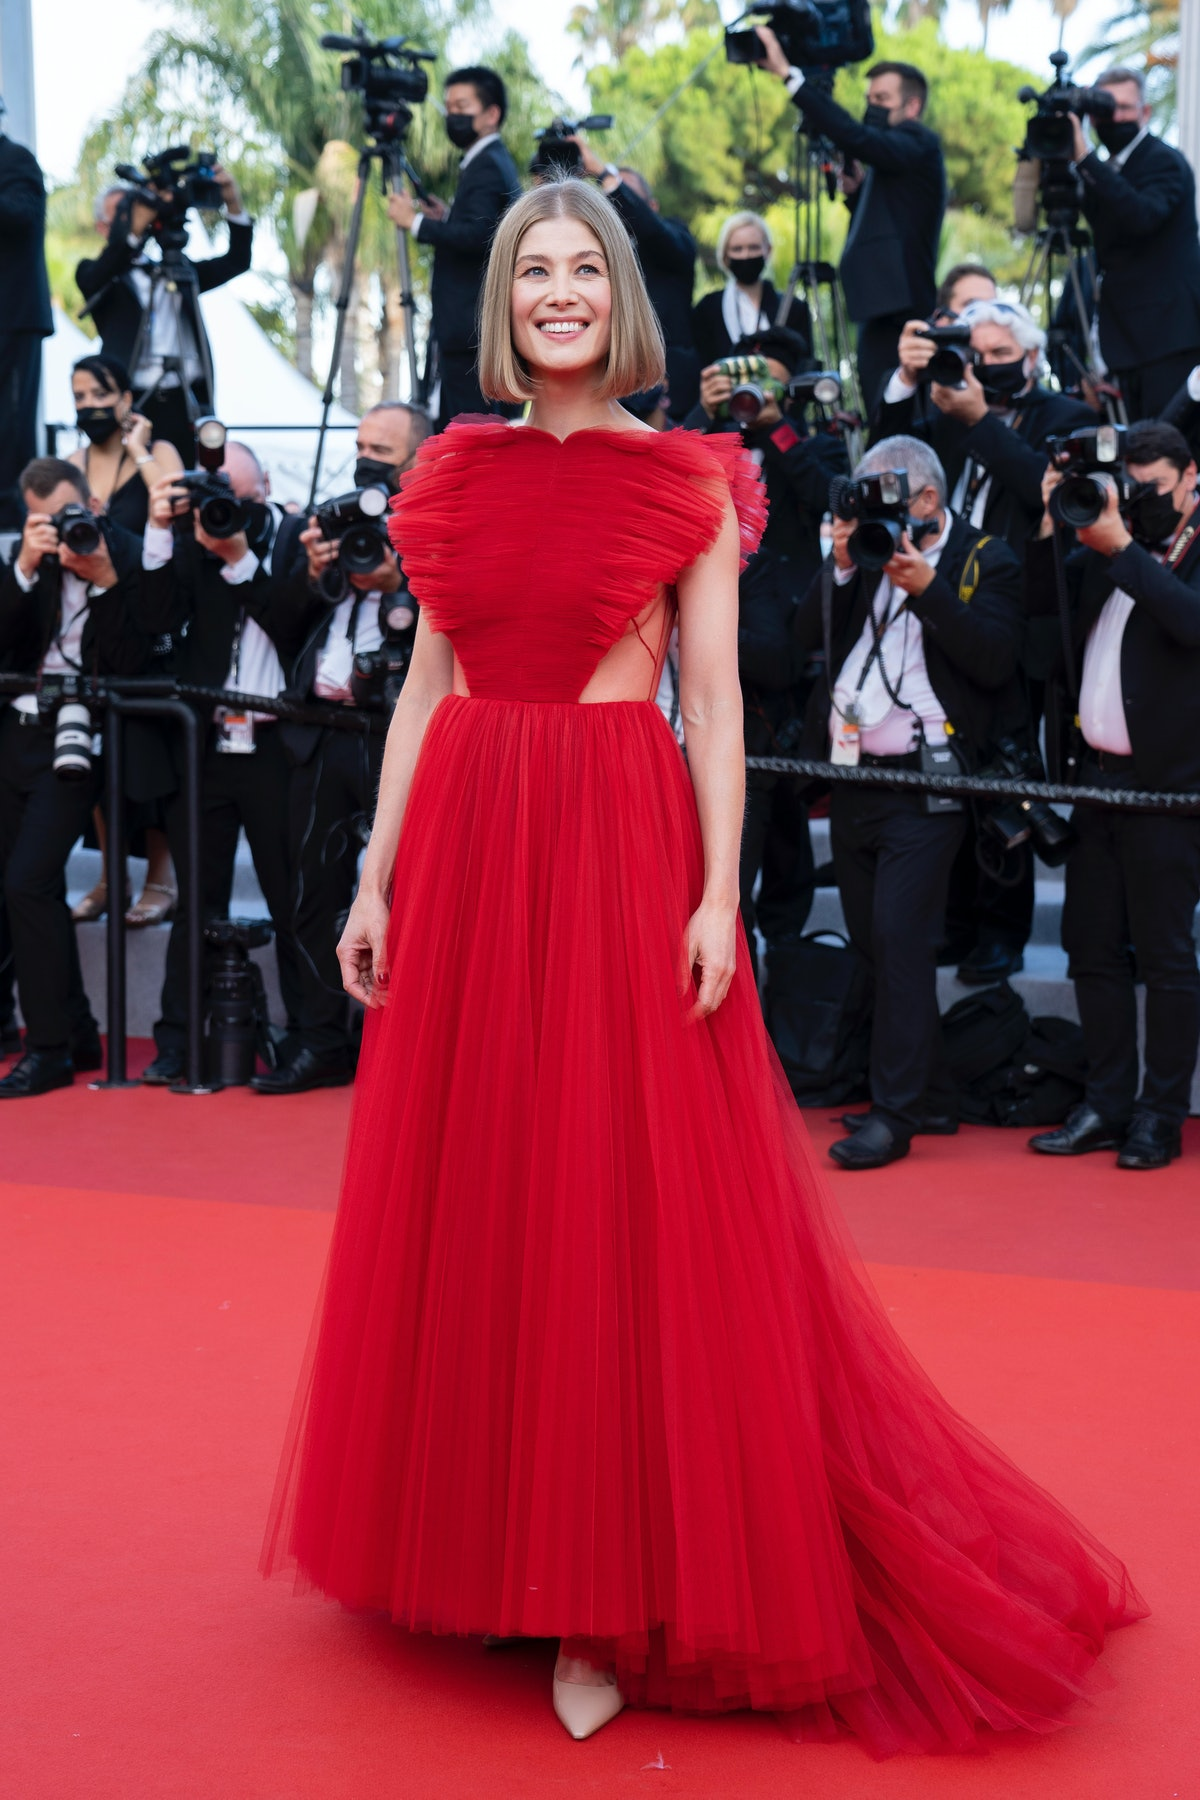 """CANNES, FRANCE - JULY 17: Rosamund Pike attends the final screening of """"OSS 117: From Africa With Love"""" and closing ceremony during the 74th annual Cannes Film Festival on July 17, 2021 in Cannes, France. (Photo by Arnold Jerocki/FilmMagic)"""